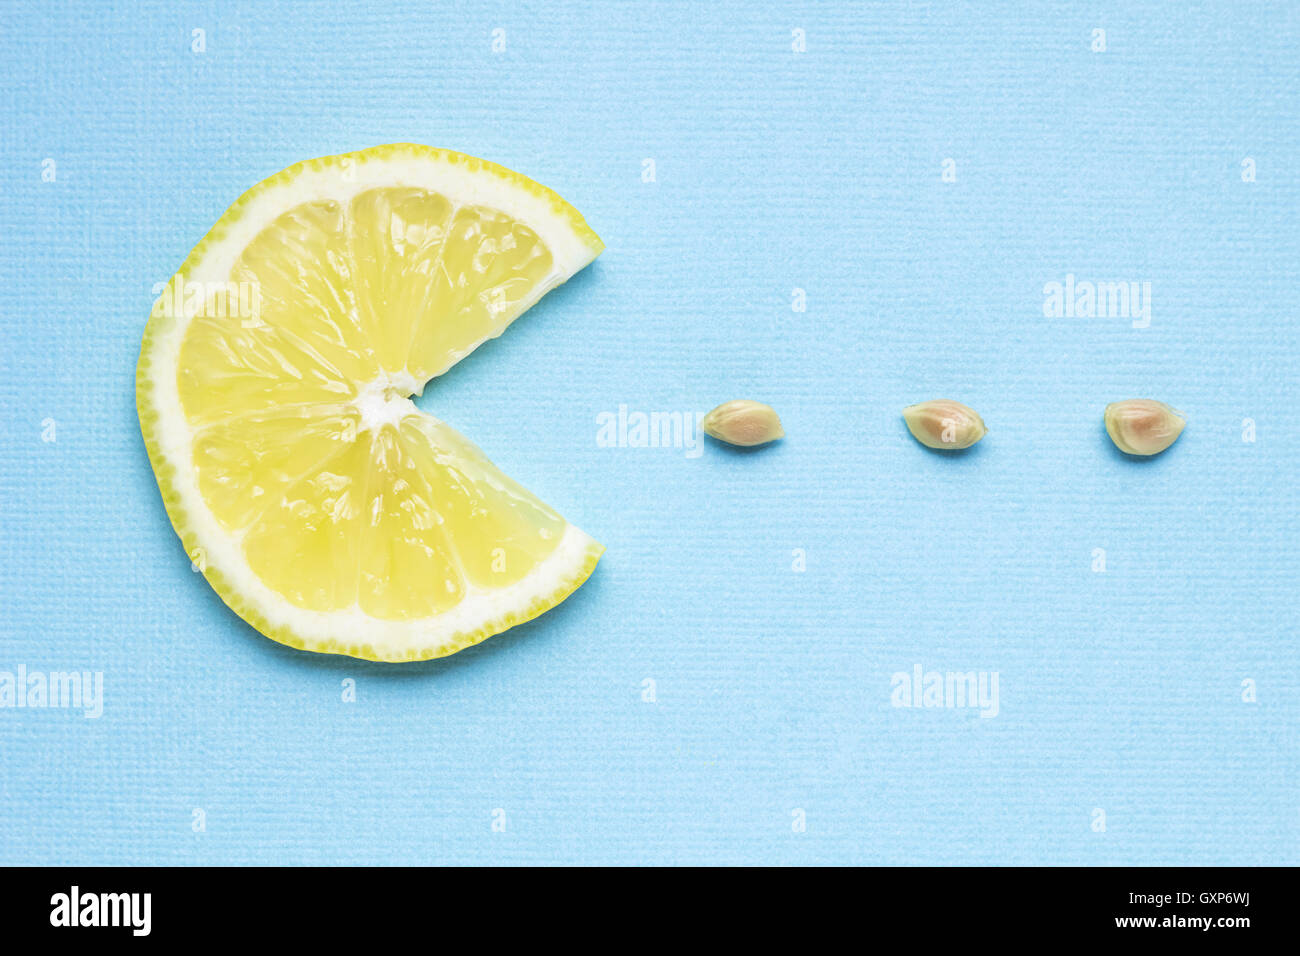 Creative concept photo of a lemon slice eating seeds on blue background. - Stock Image